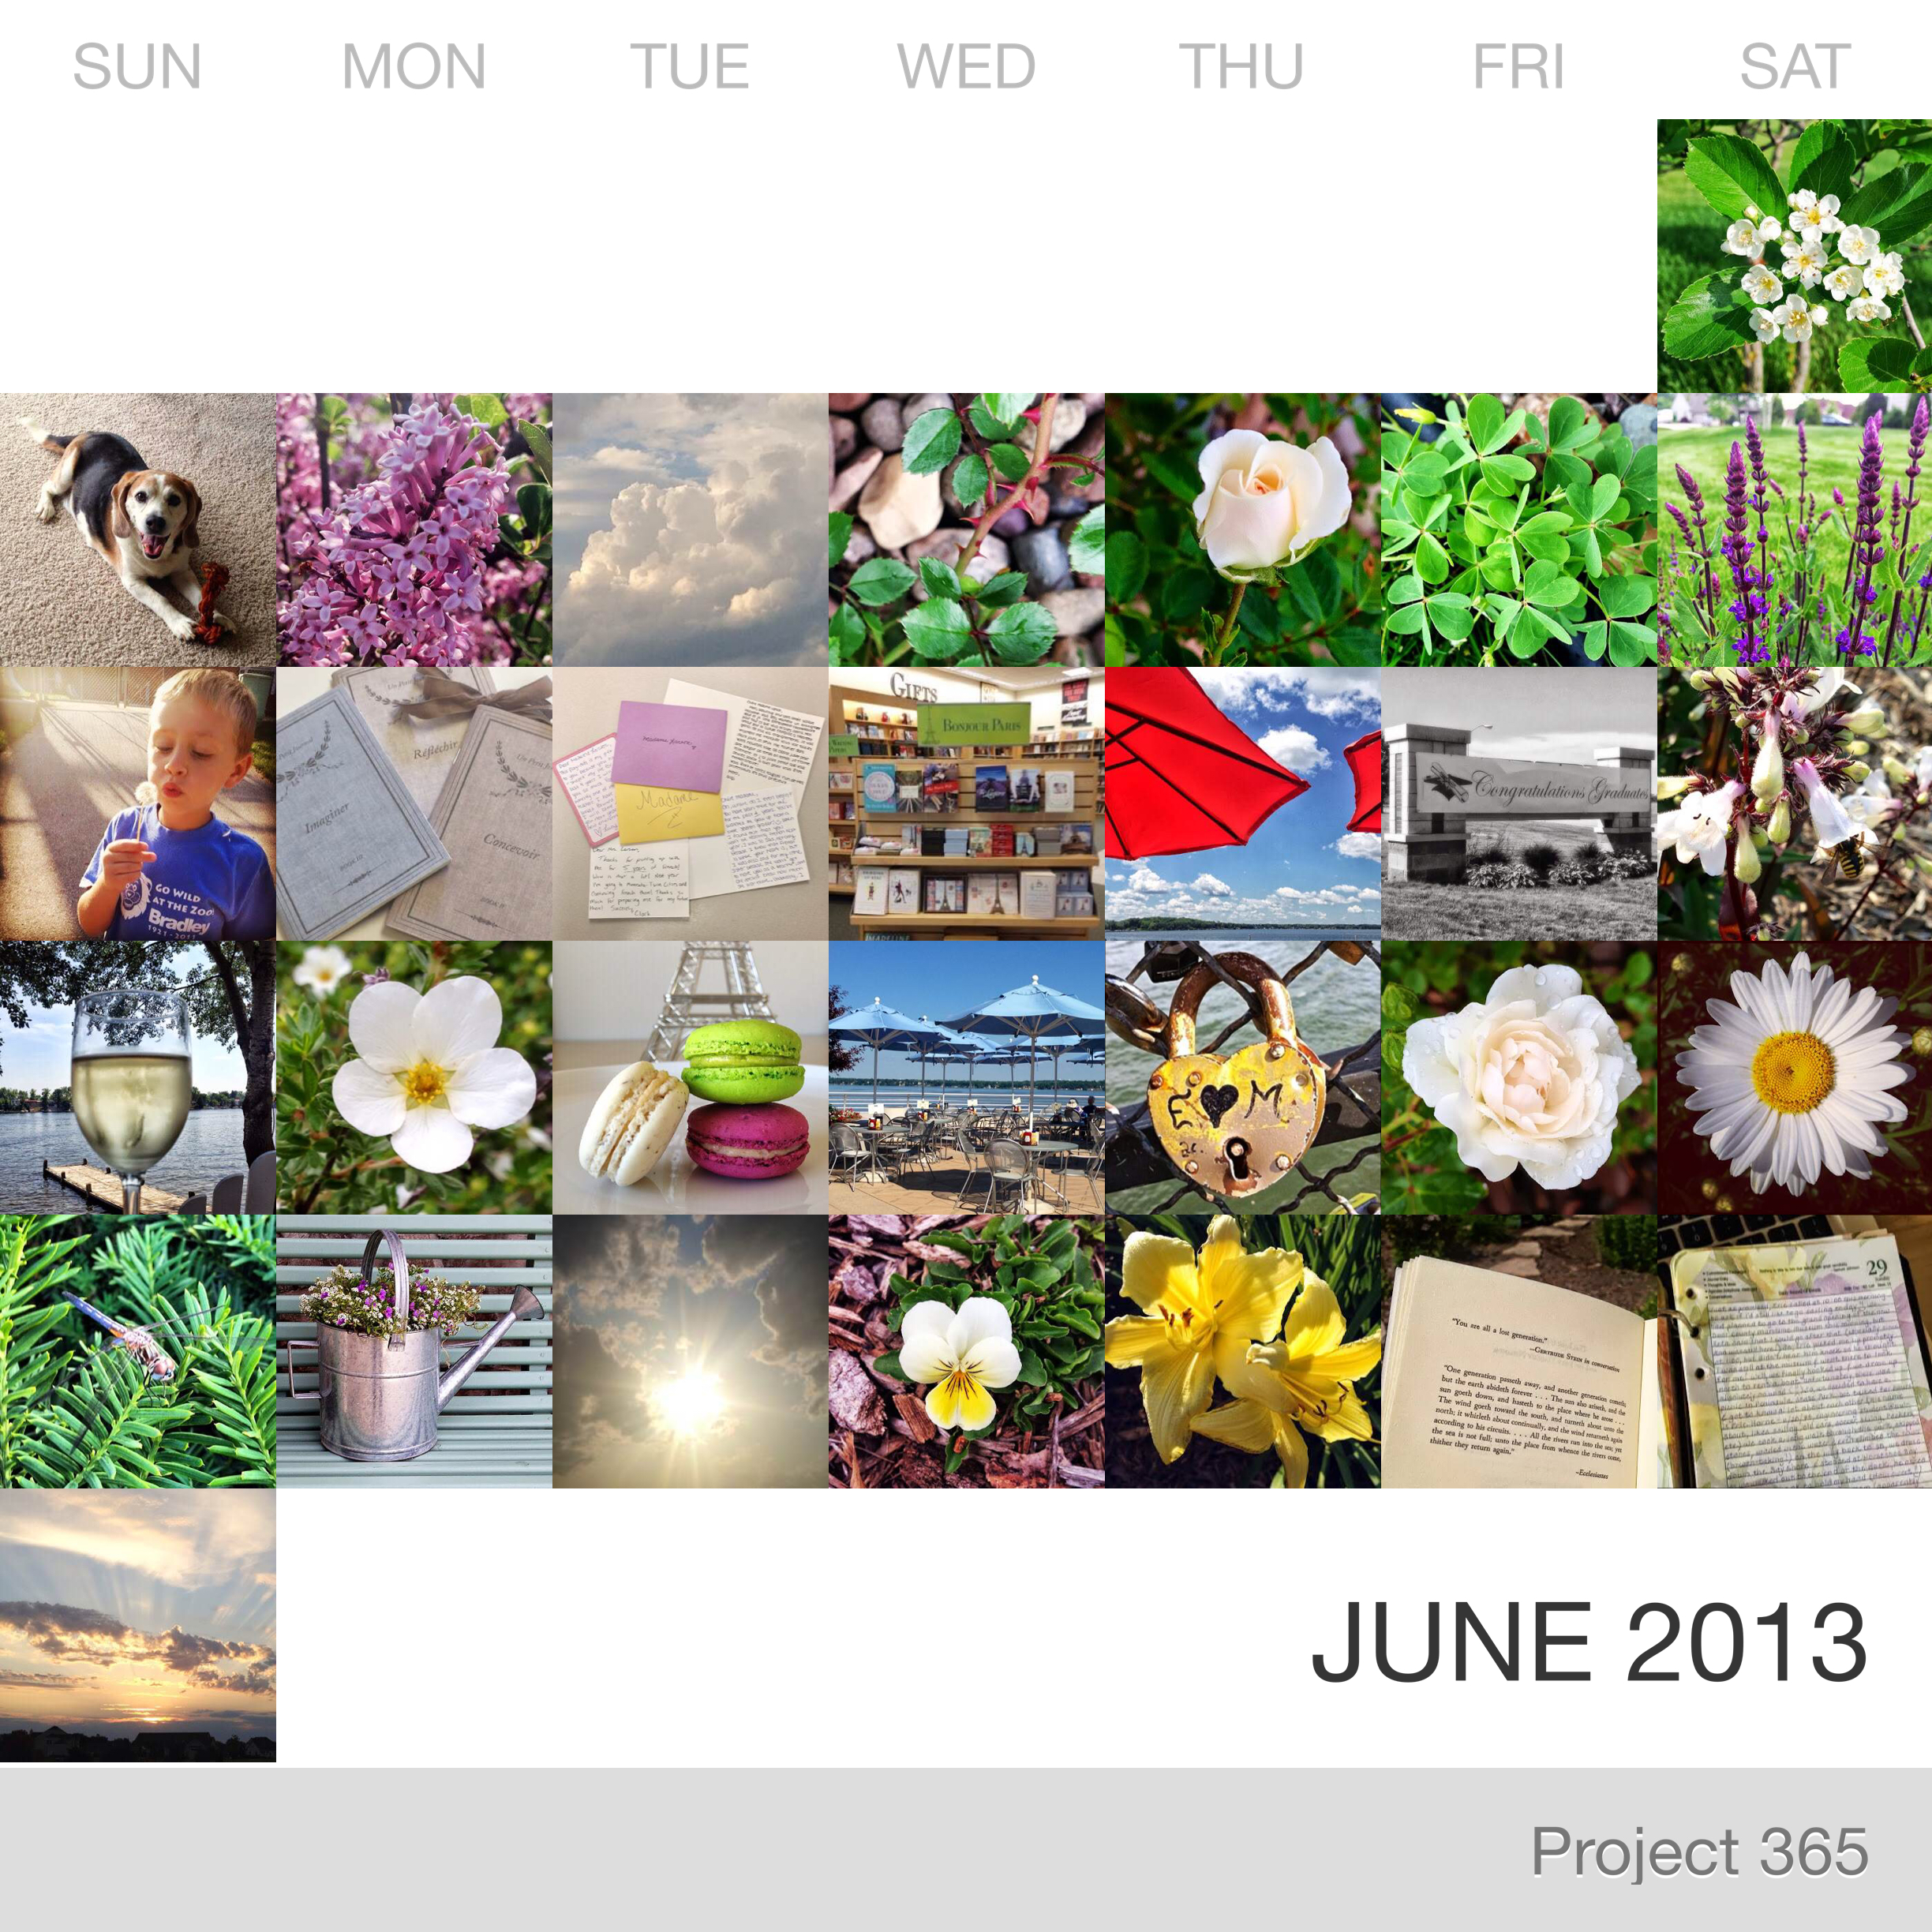 Project 365 _June-2013_Collage.jpg